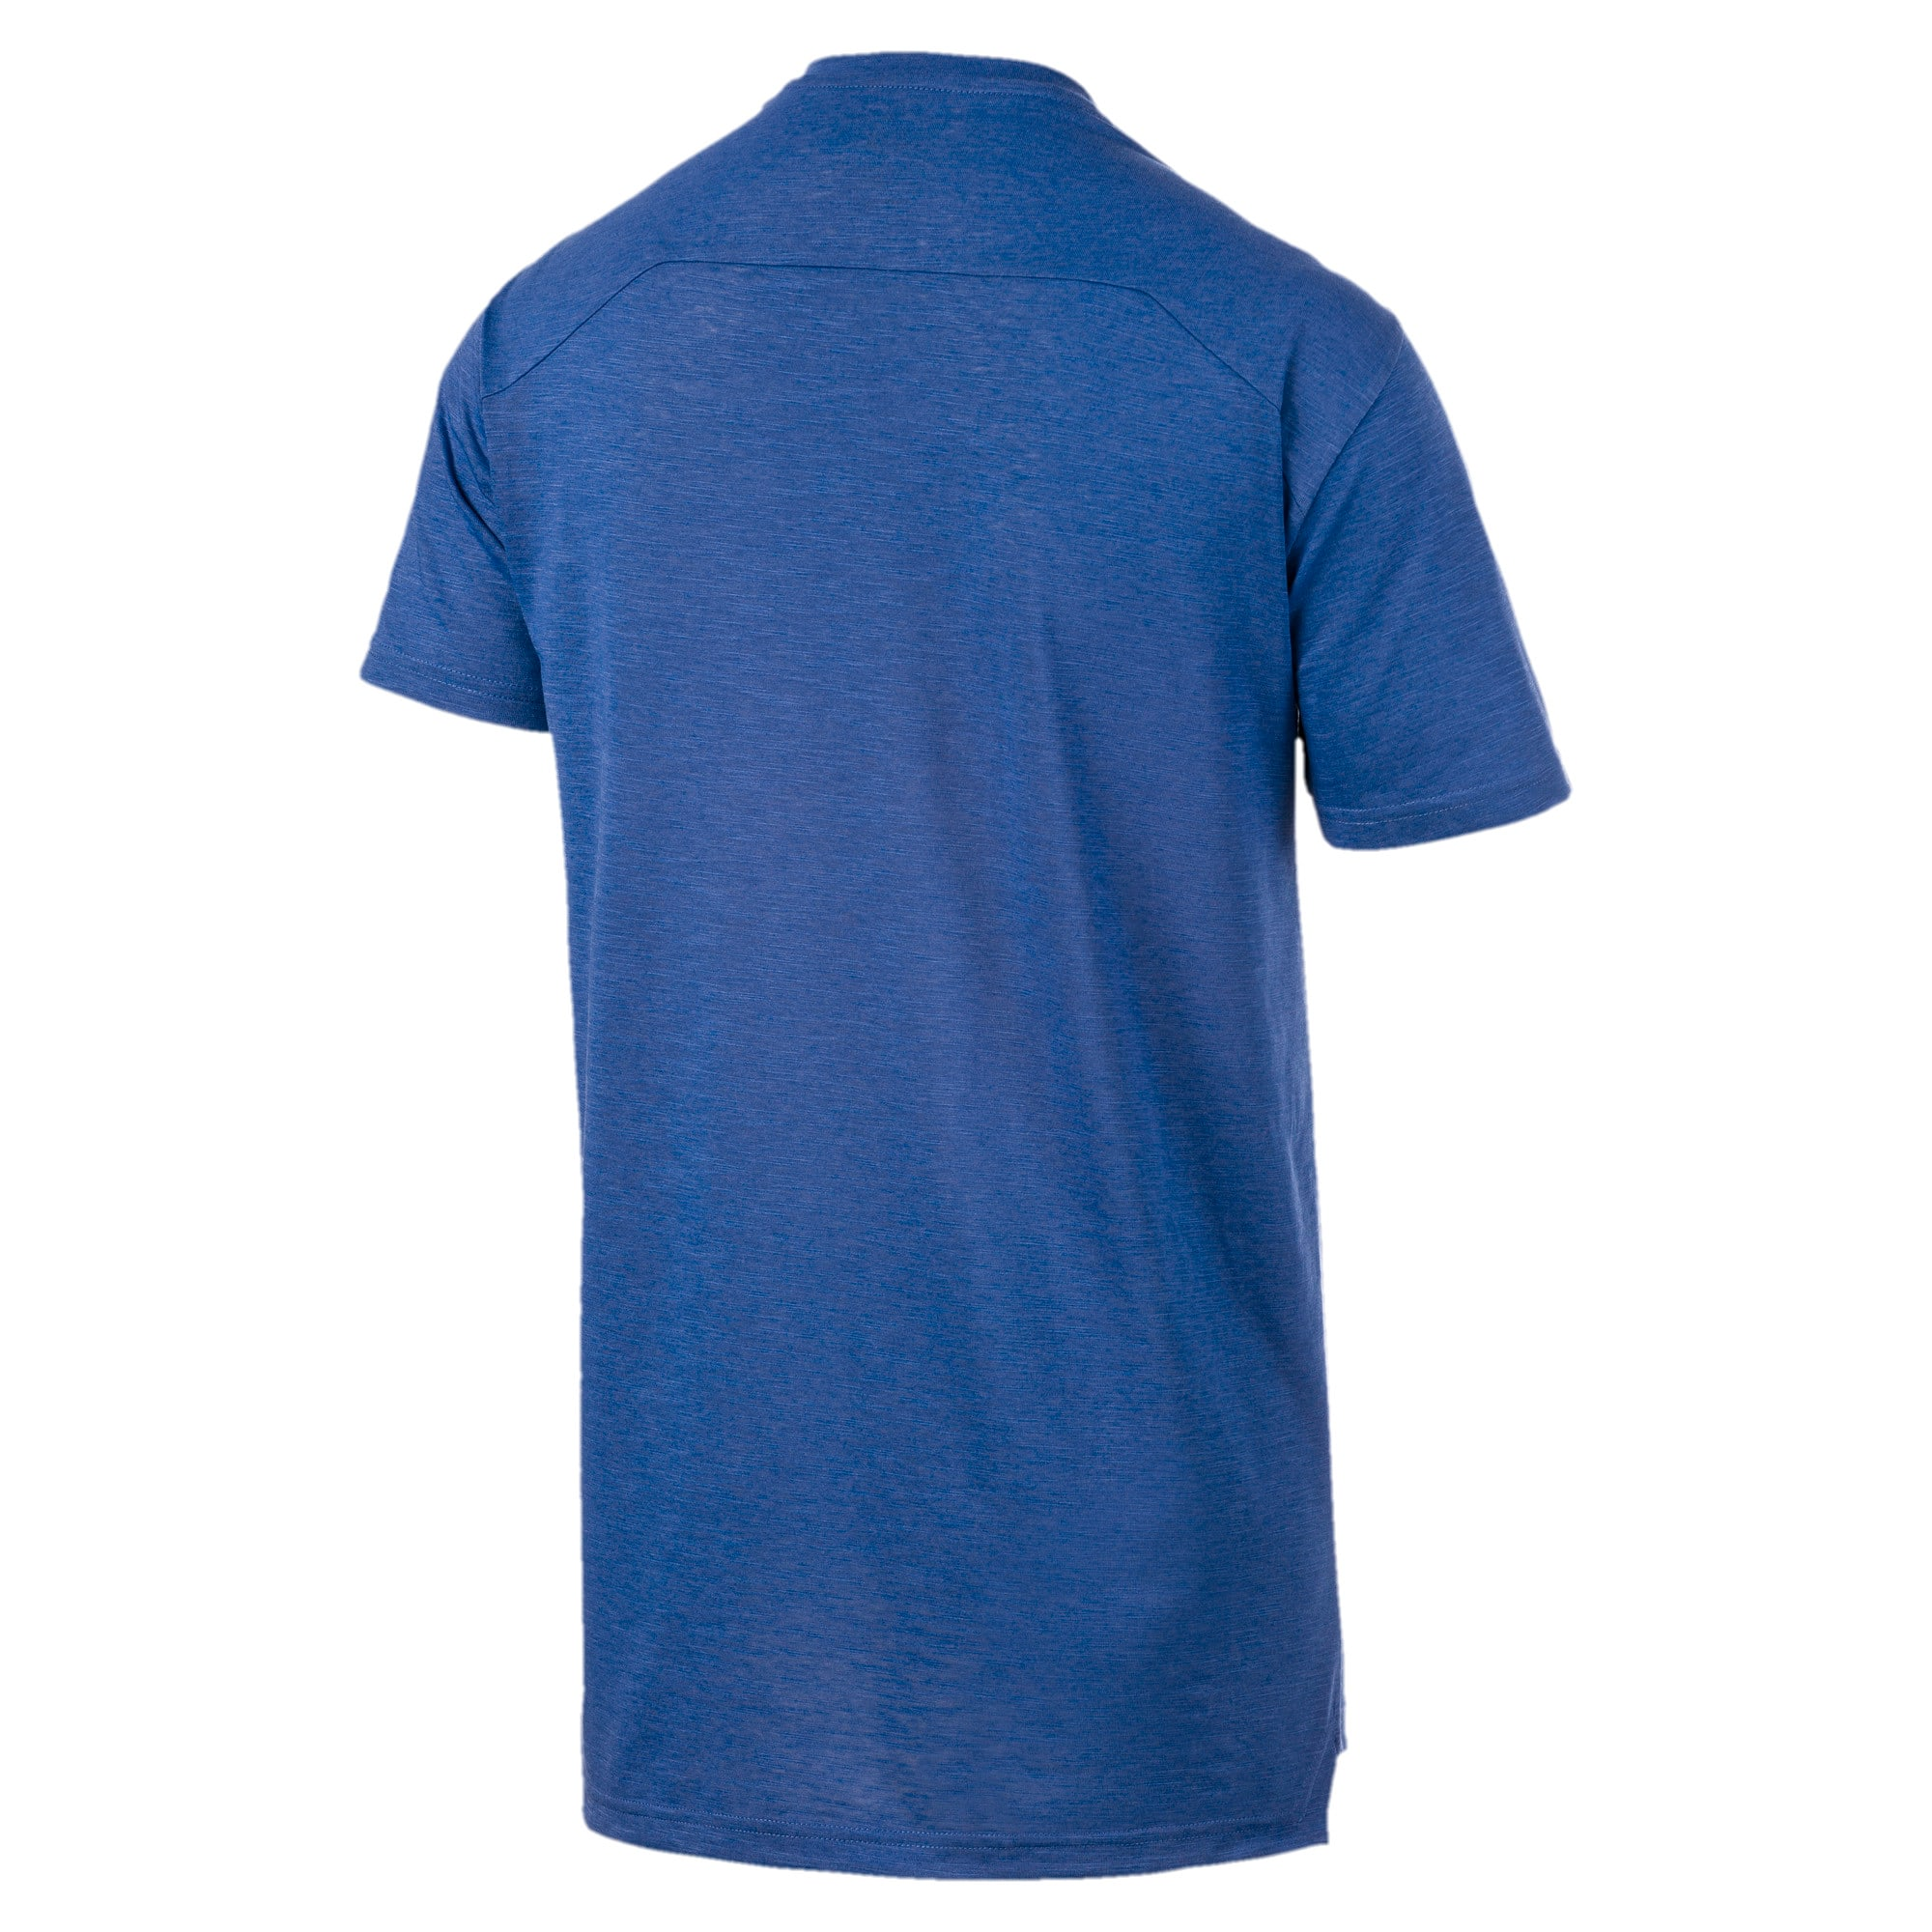 Thumbnail 5 of Energy Herren Training T-Shirt, Galaxy Blue Heather, medium